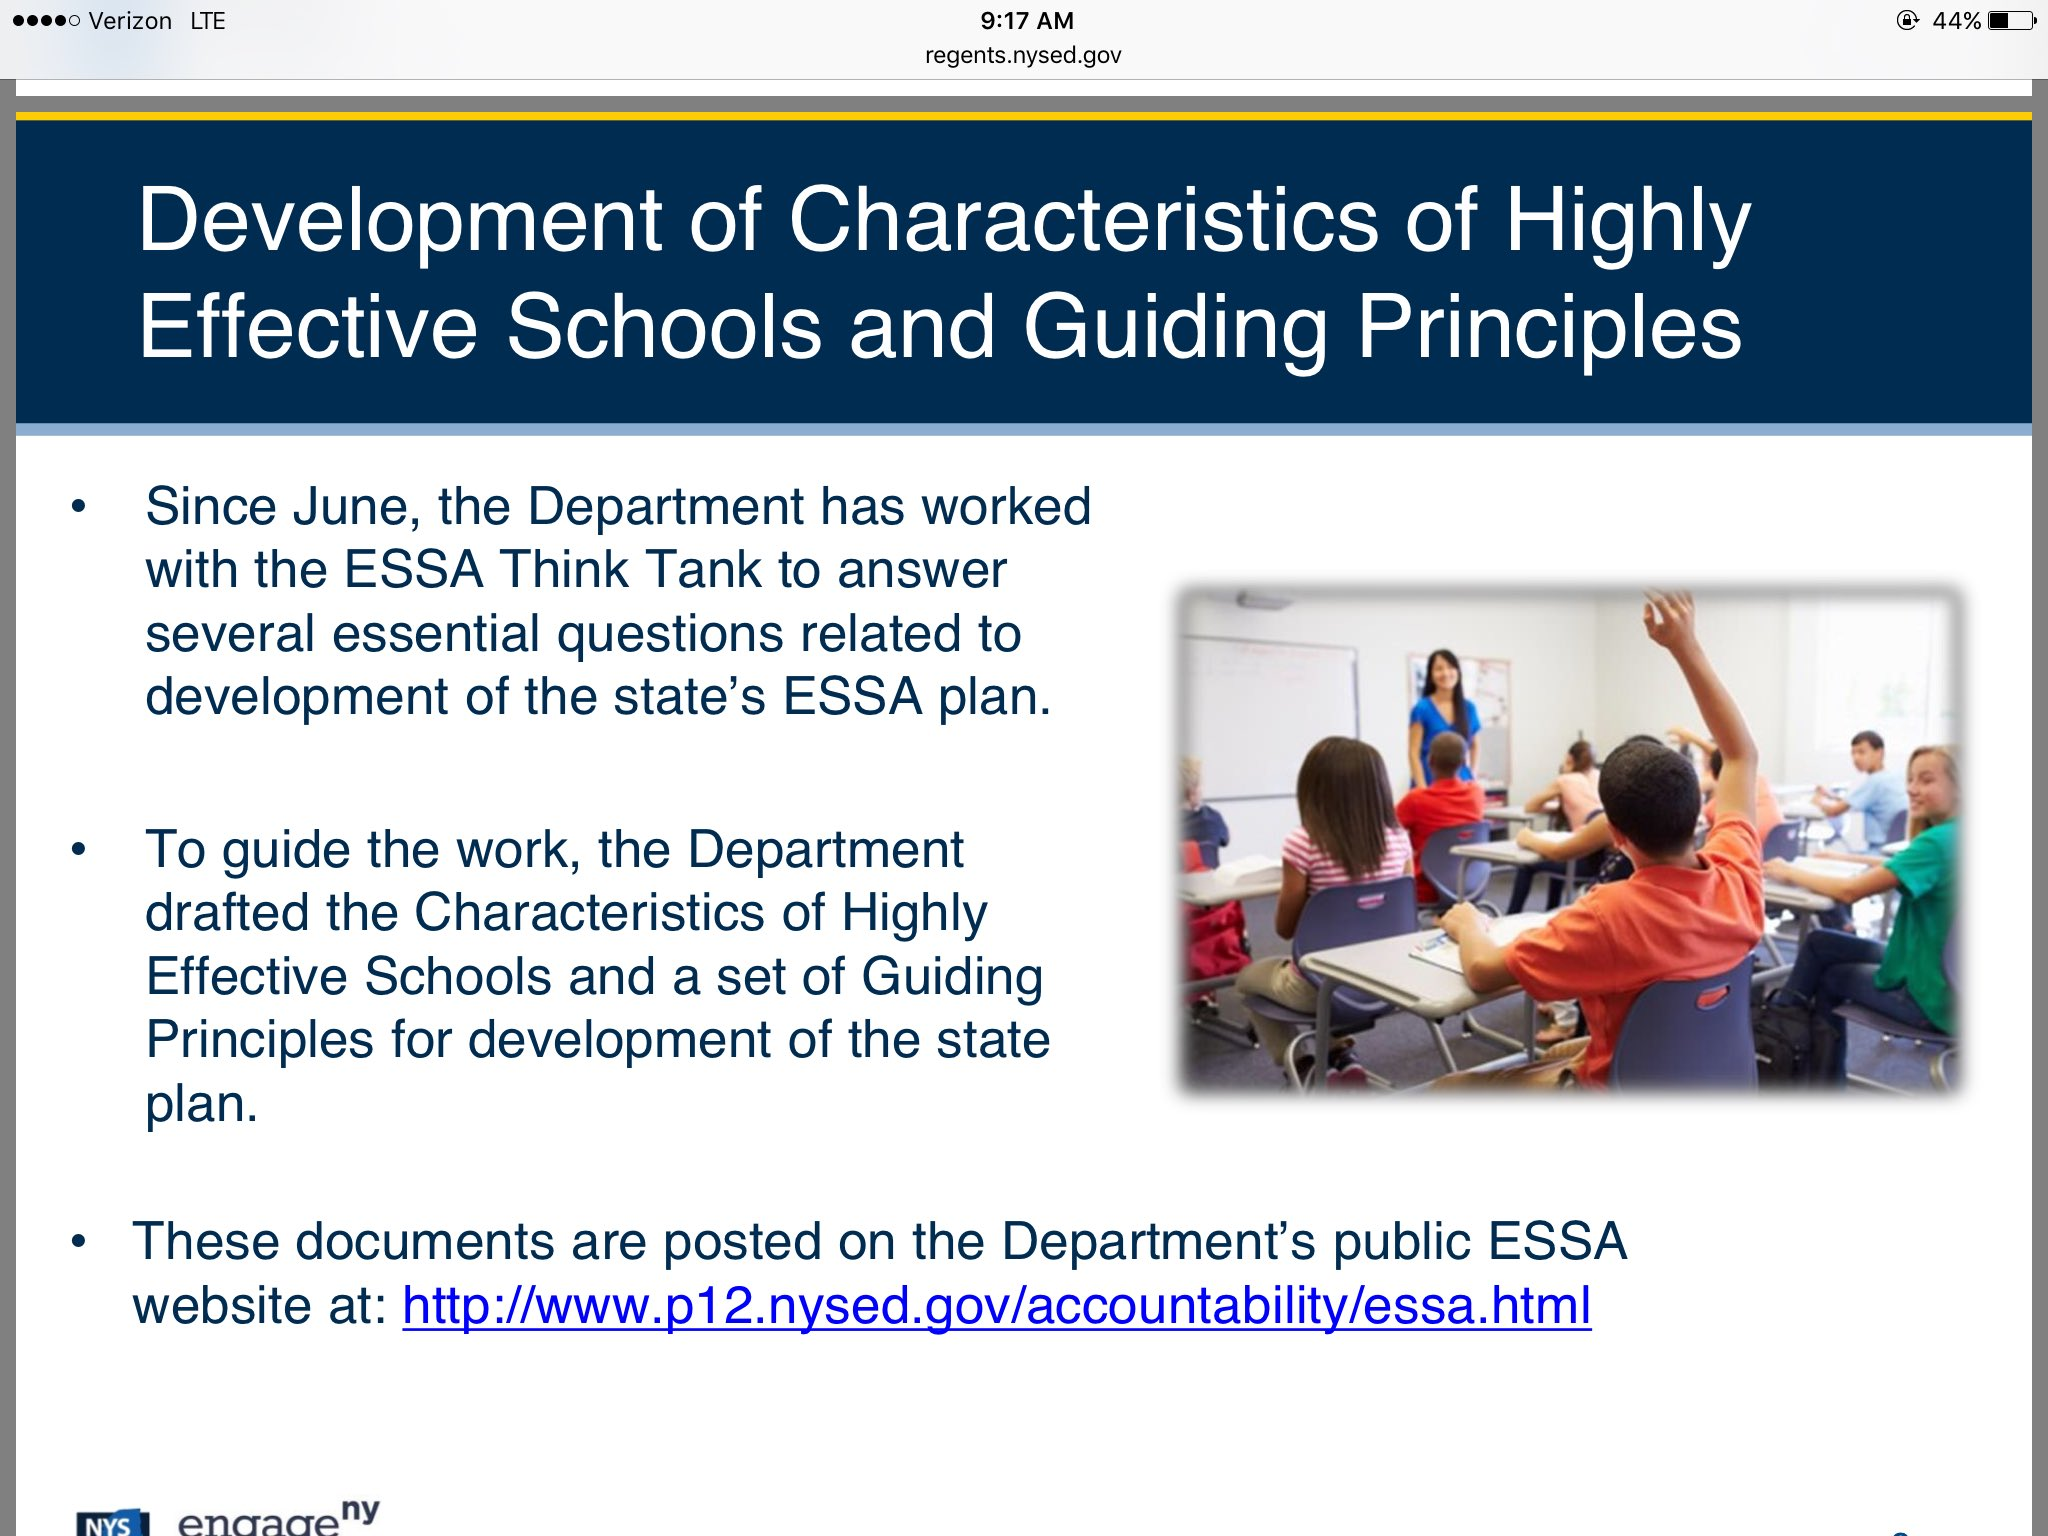 Development of guiding principles and high concept ideas recent work of Think Tank @NYSEDNews @NYSPTA https://t.co/5b4K7cmB1T